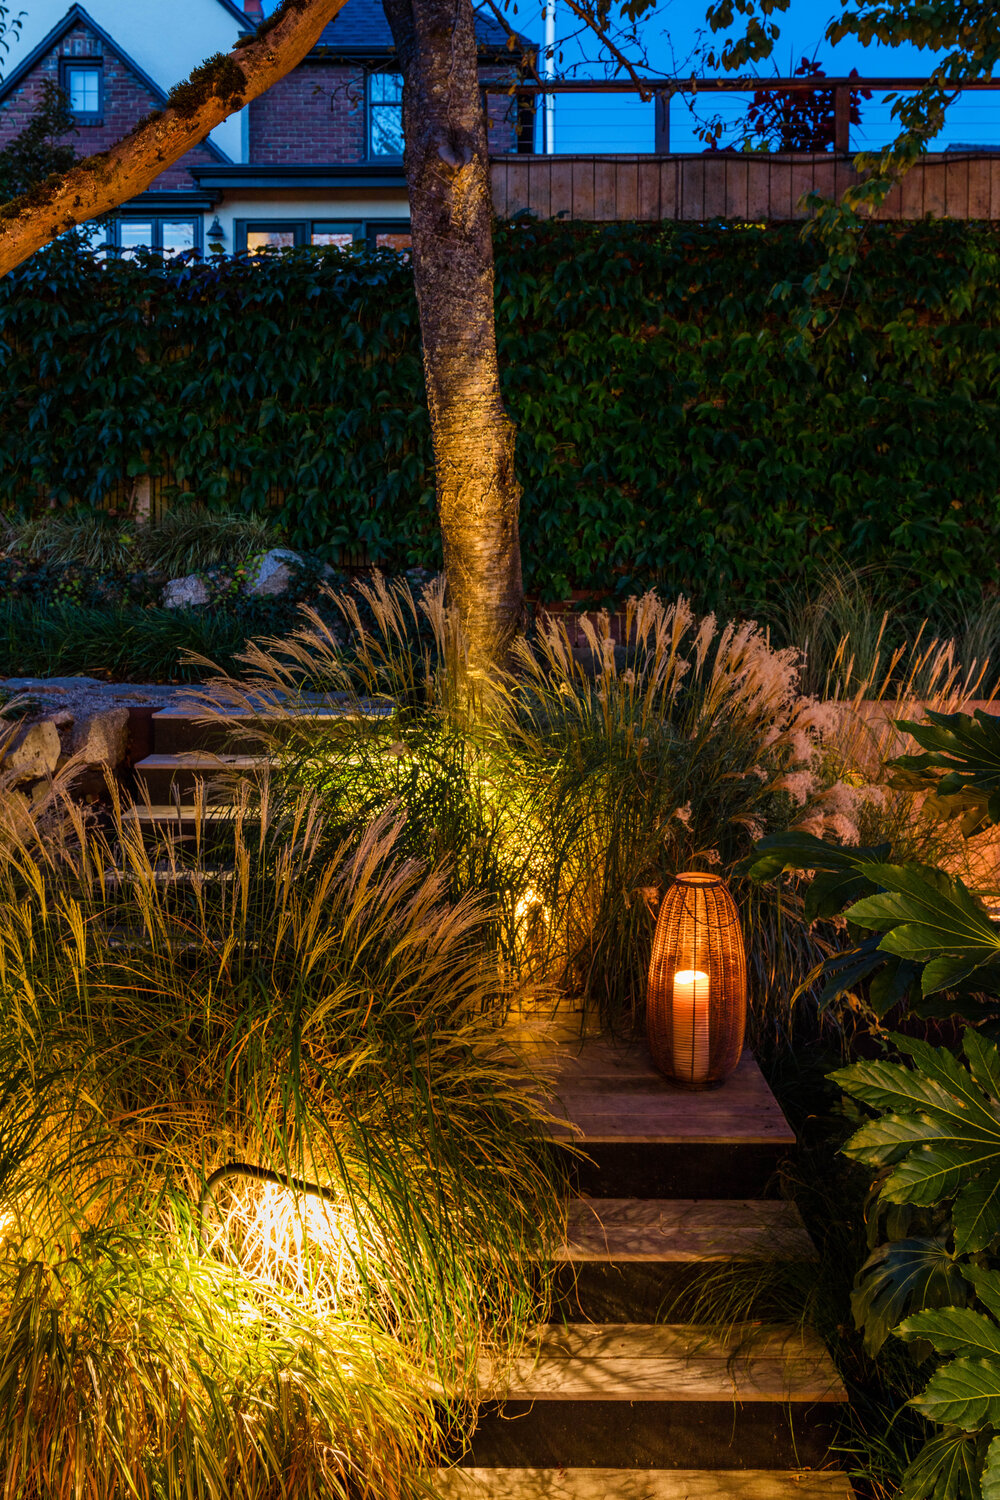 Lantern style lighting for the garden and patios around the house